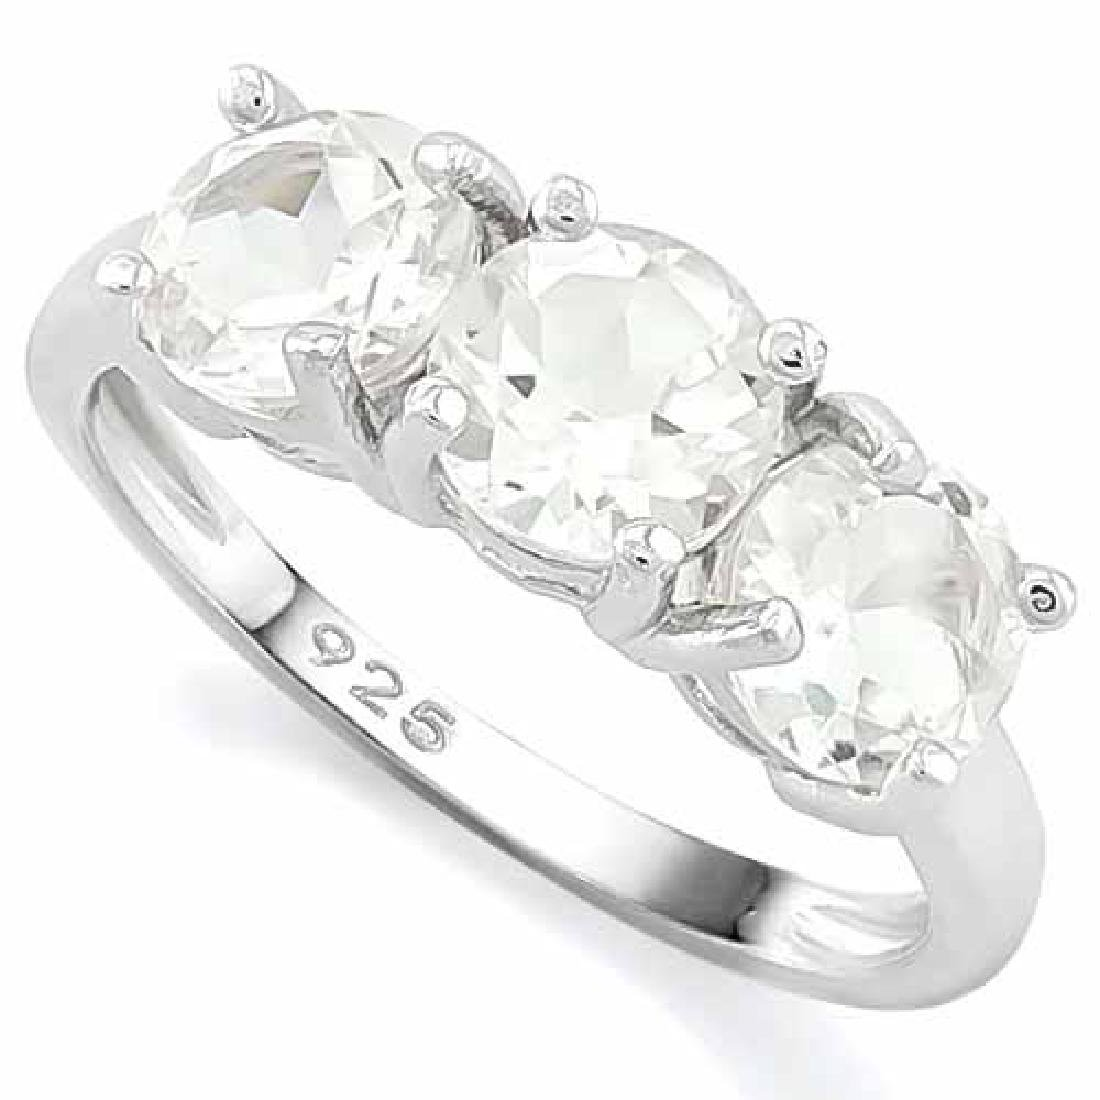 9 4/5 CARAT WHITE TOPAZ 925 STERLING SILVER RING